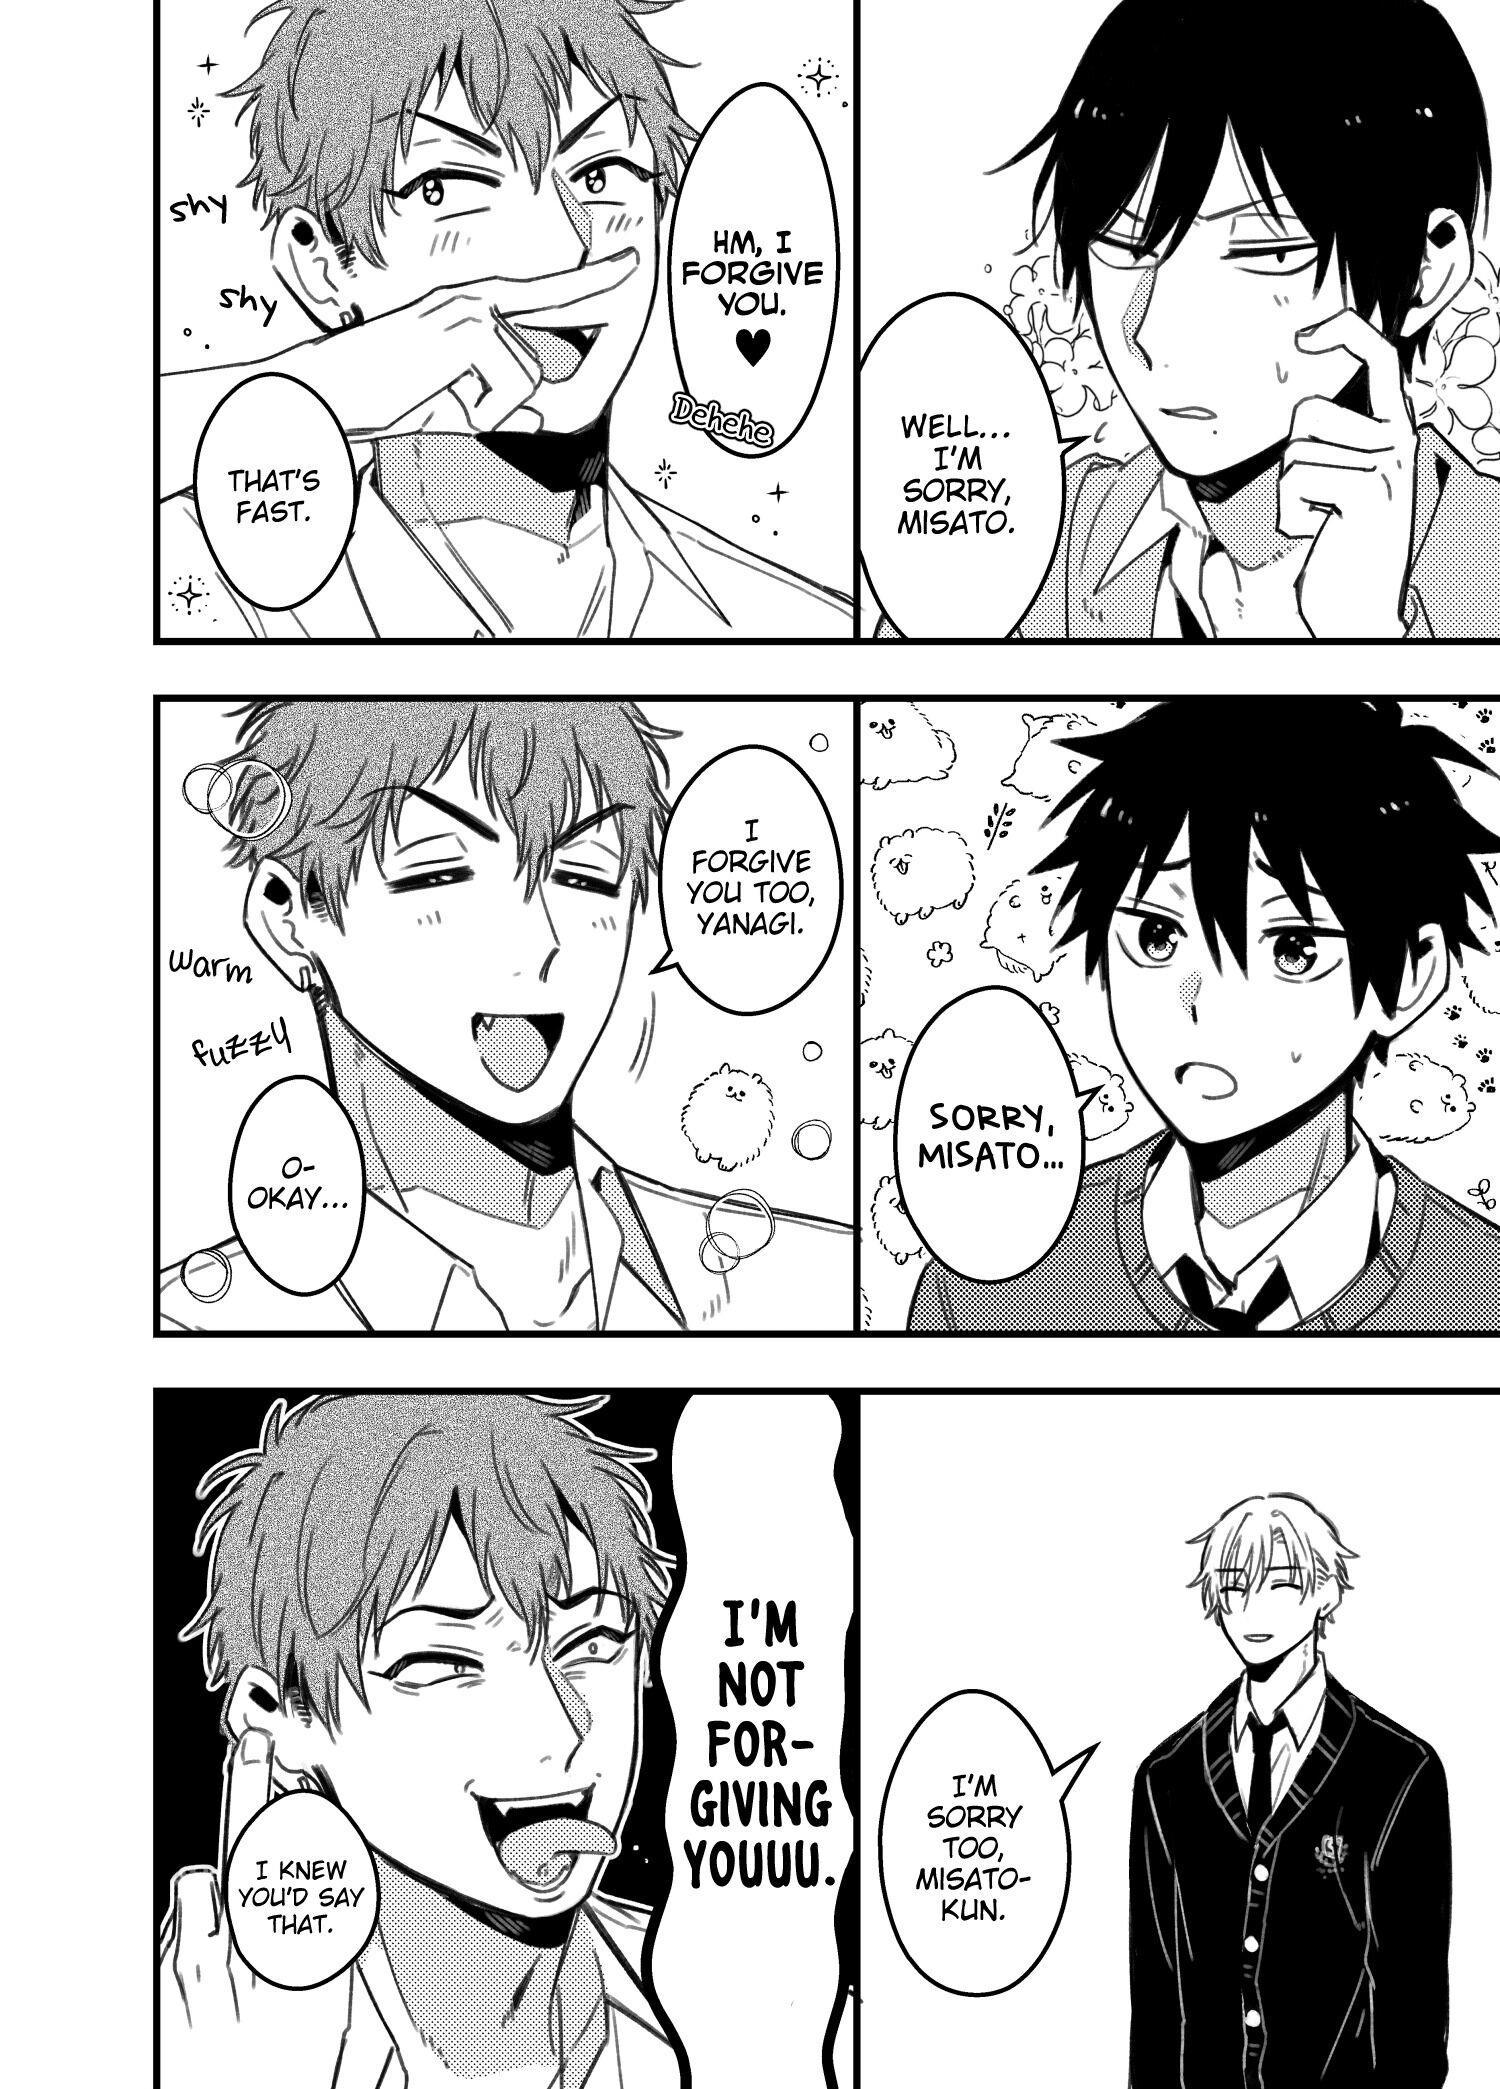 A World Where Everything Definitely Becomes Bl Vs. The Man Who Definitely Doesn't Want To Be In A Bl Volume 2 Chapter 35.6 : Twitter Comics page 10 - Mangakakalots.com